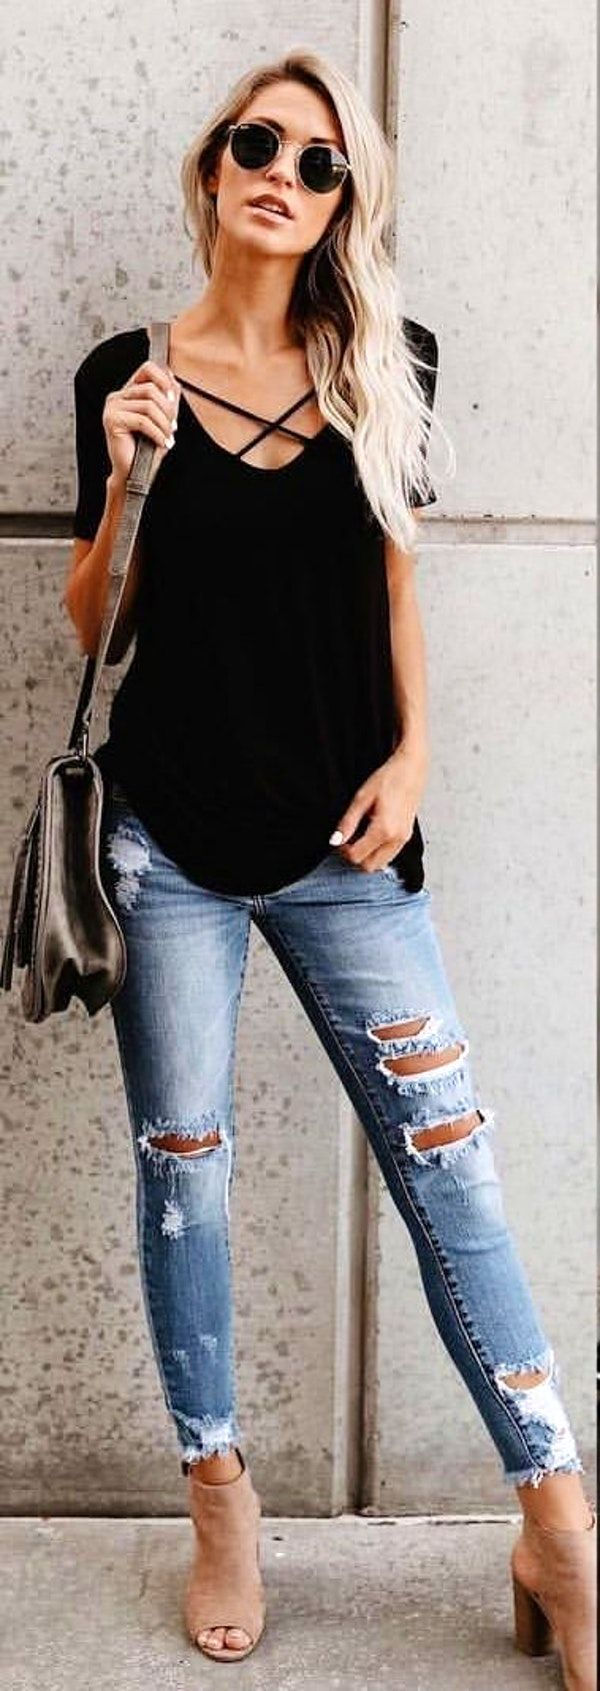 #fall #outfits women's black scoop-neck shirt with grey distressed denim jeans outfit